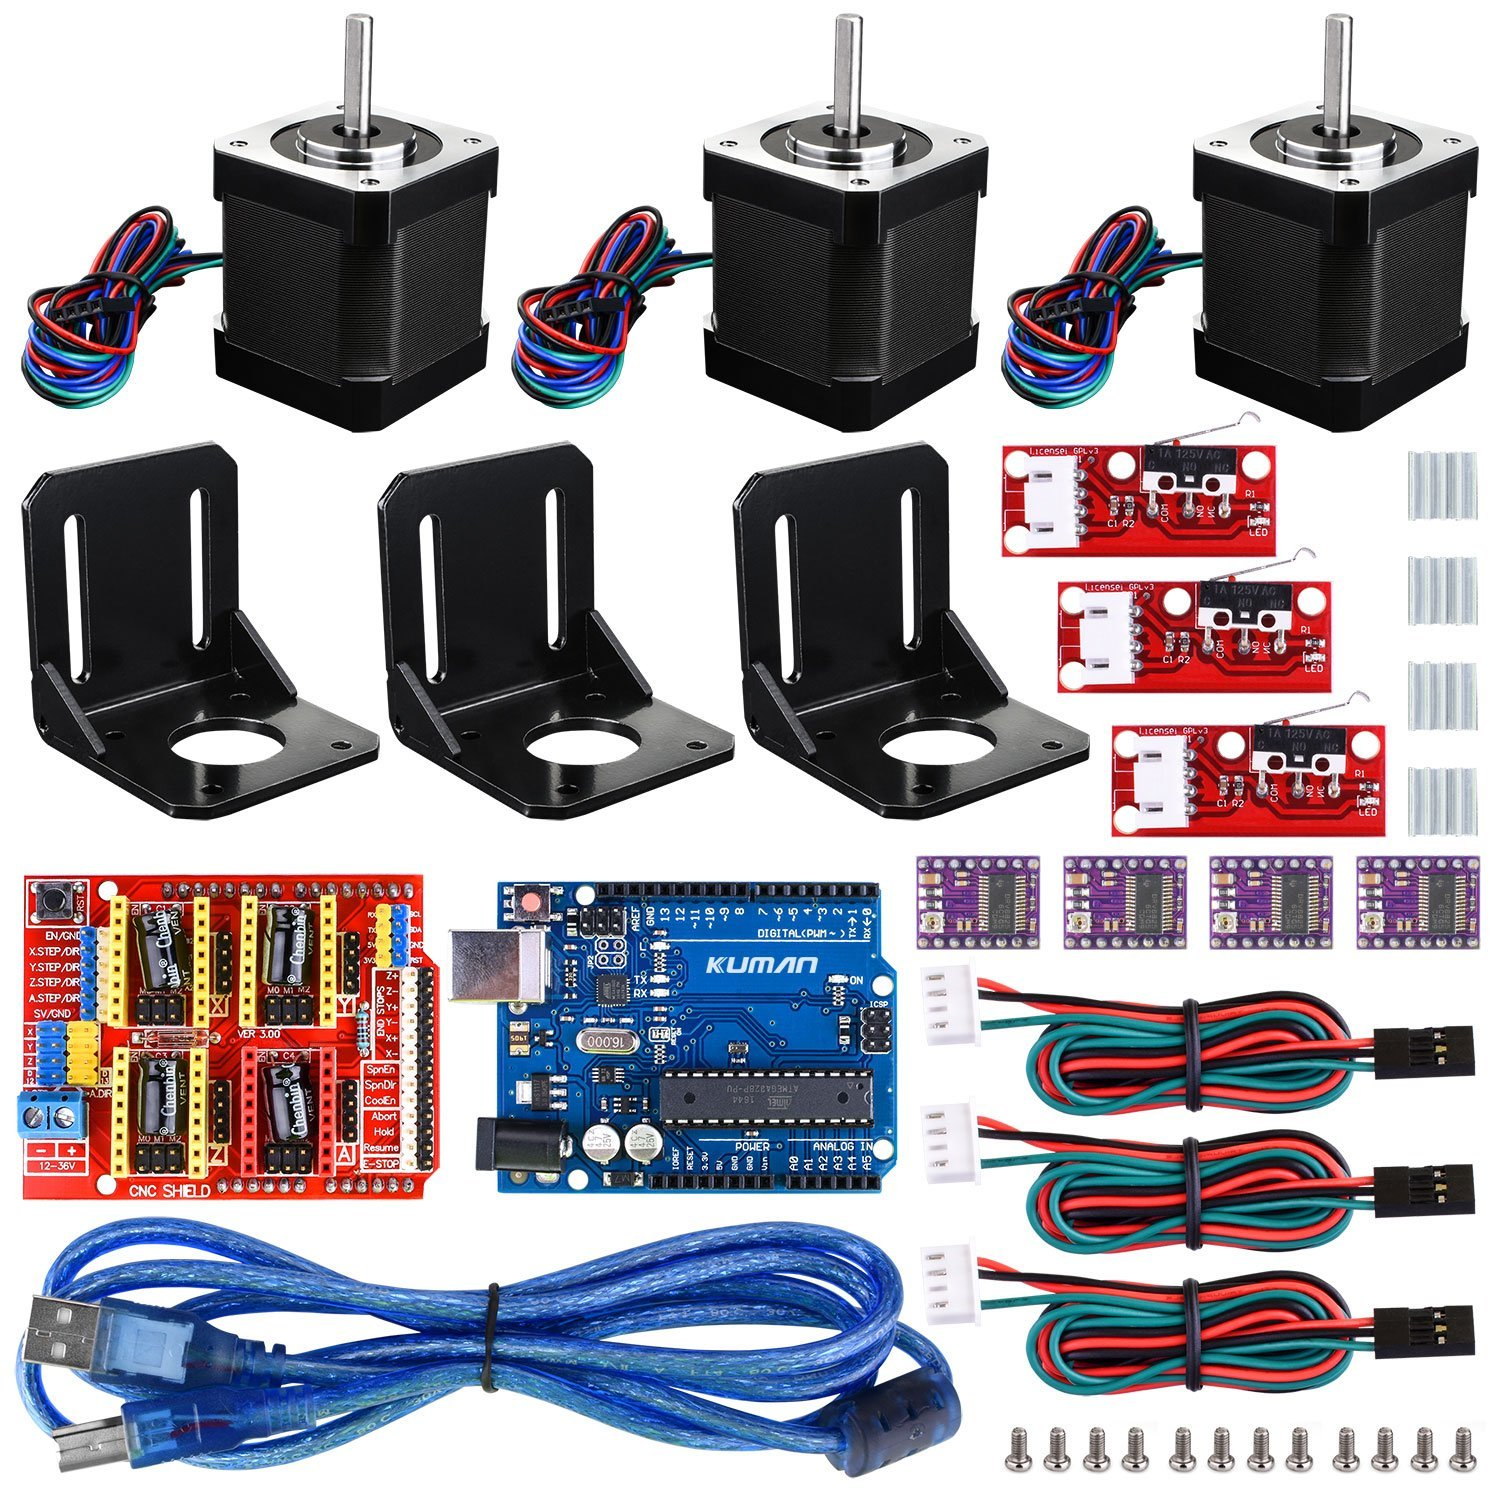 Professional 3D printer CNC Kit for arduino, Miroad GRBL CNC Shield +UNO R3 Board + RAMPS 1.4 Mechanical Switch Endstop KB02 open smart uno atmega328p development board for arduino uno r3